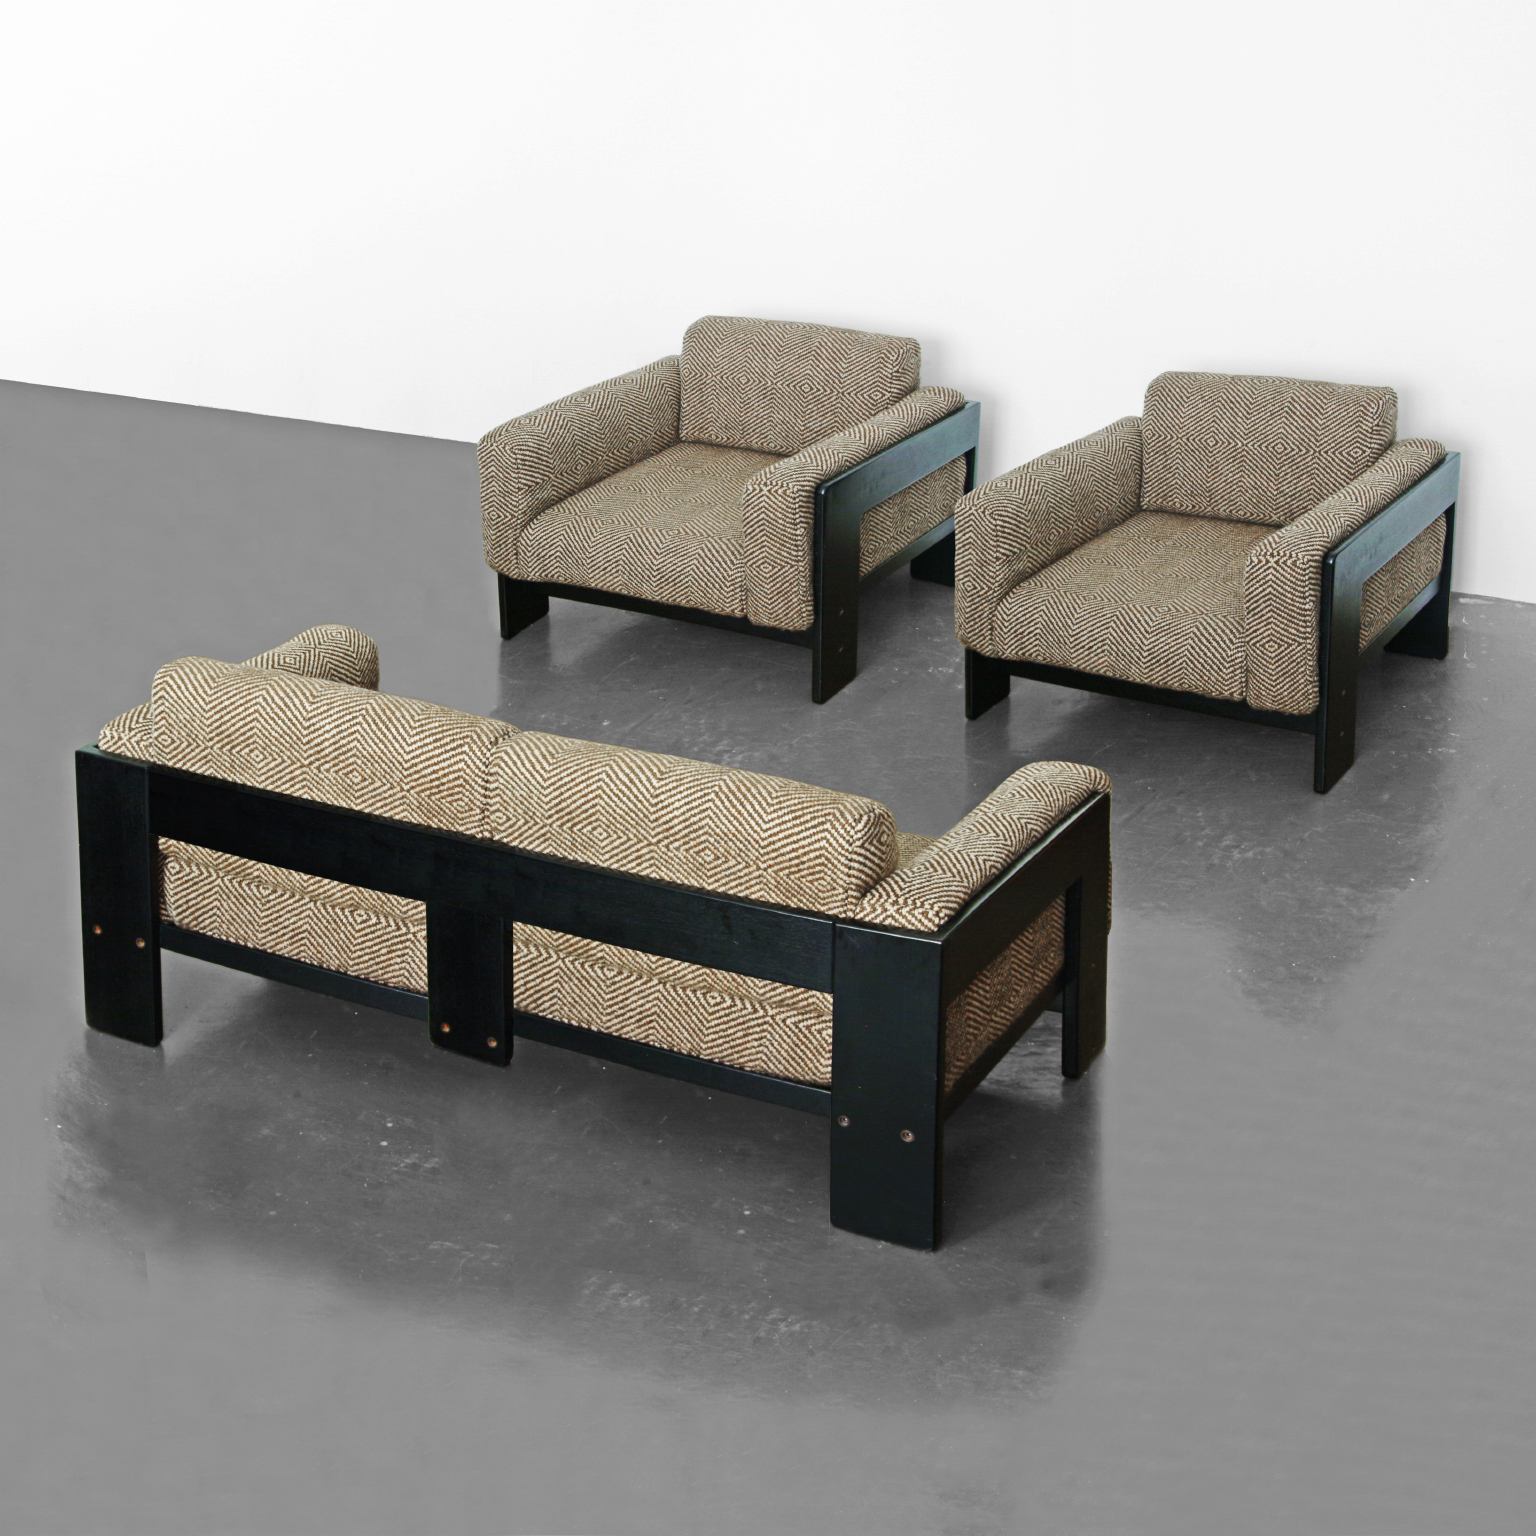 betten modern good full size of best betten schlafsofas. Black Bedroom Furniture Sets. Home Design Ideas